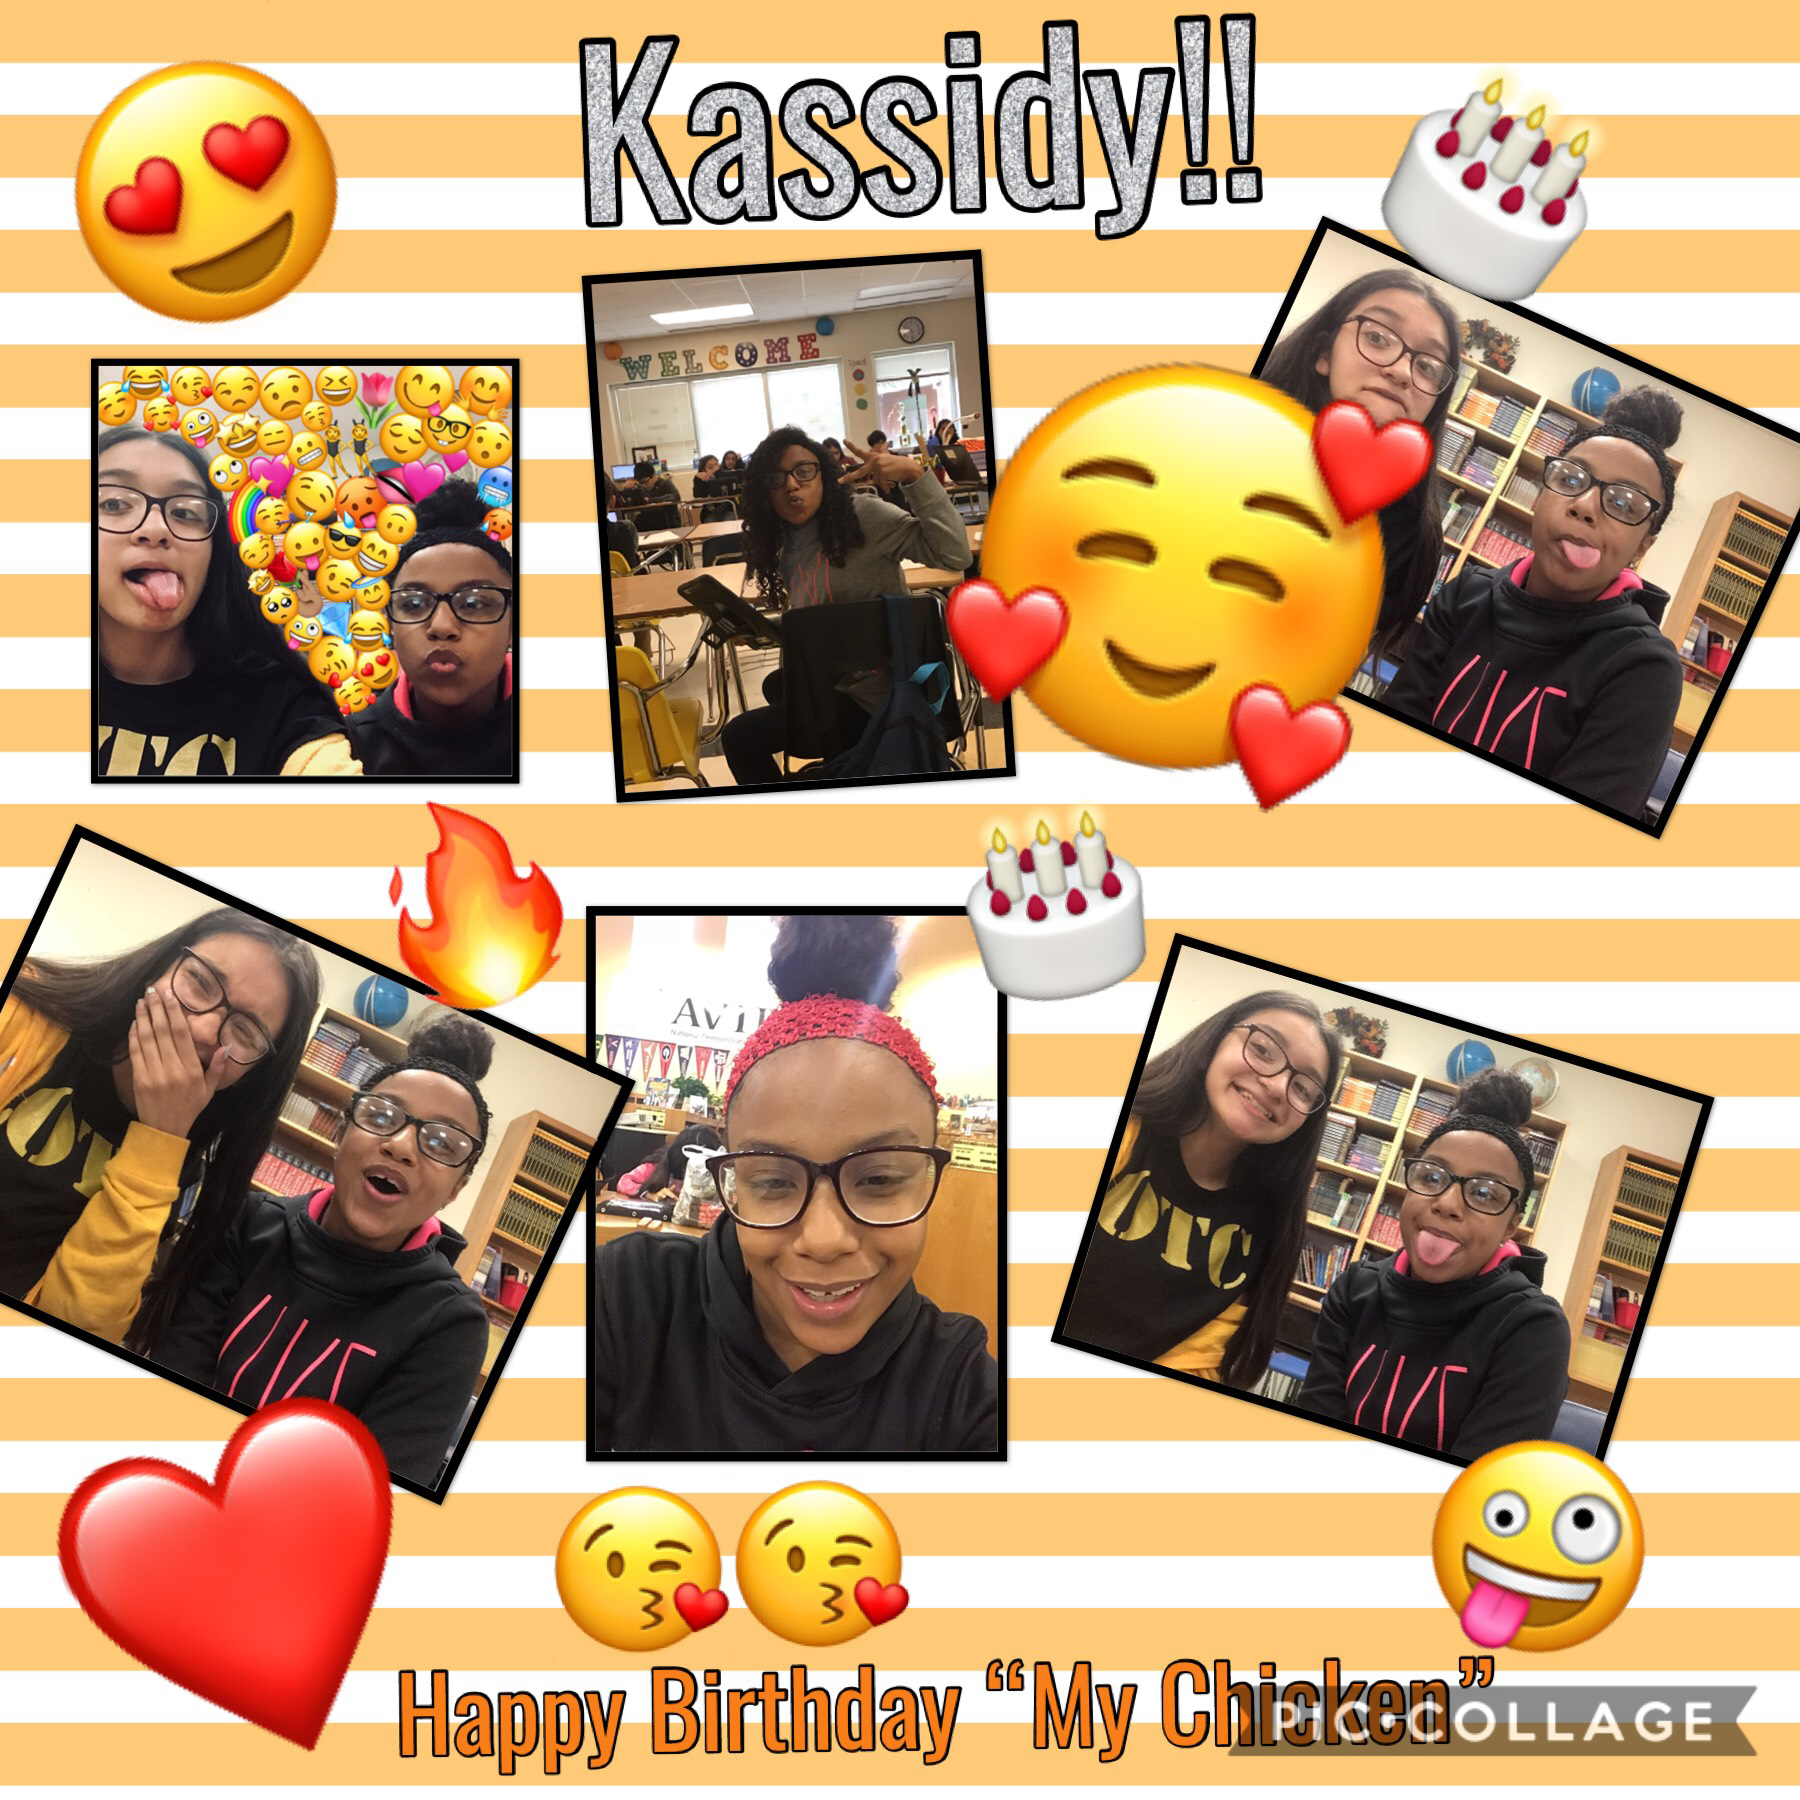 Happy birthday my chicken 🍗 luv you 😘❤️ 3/28/19